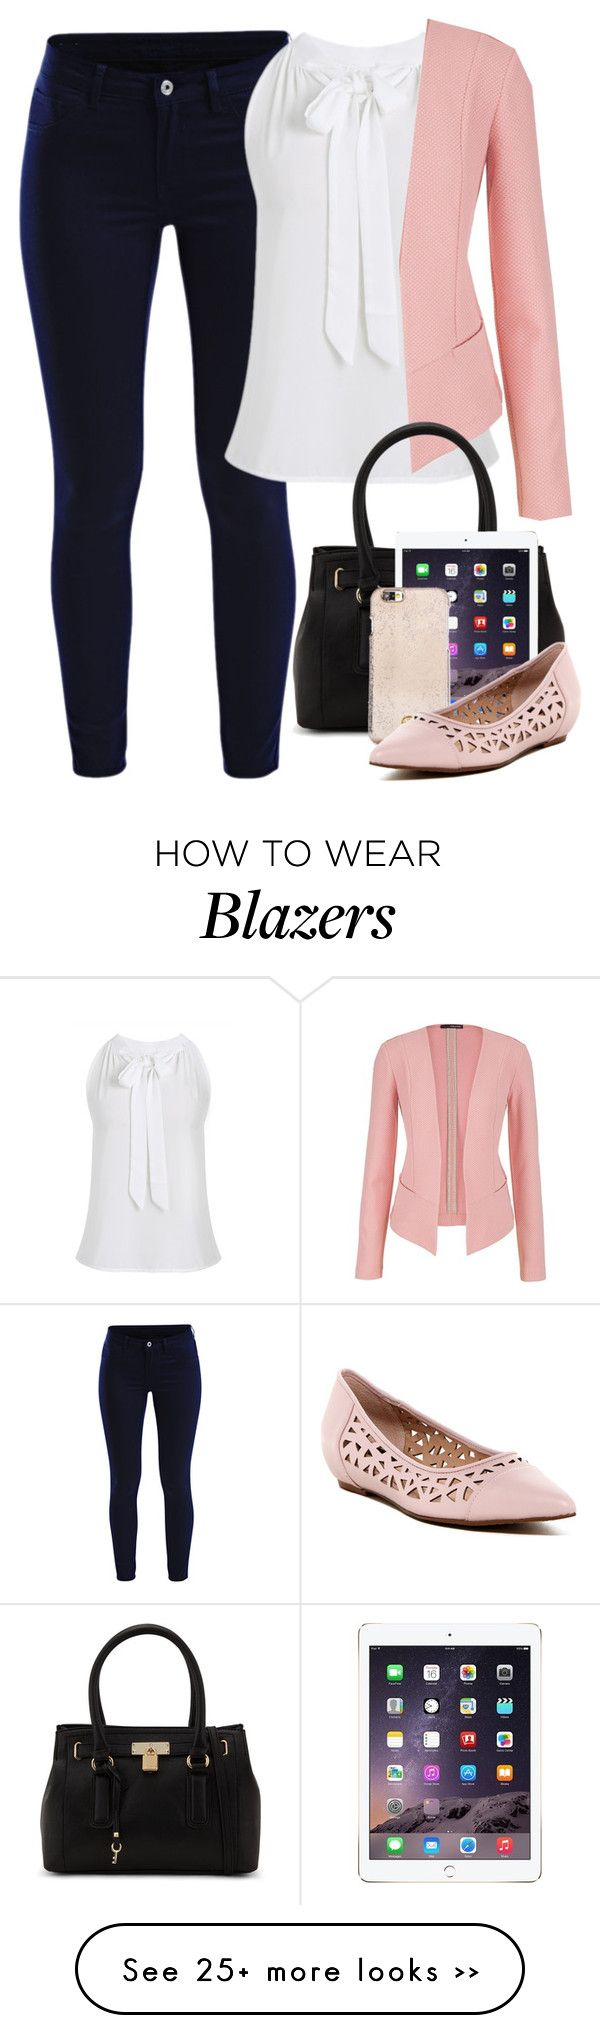 """""""Chic yet Elegant for the Work Place"""" by cloudybooks on Polyvore"""